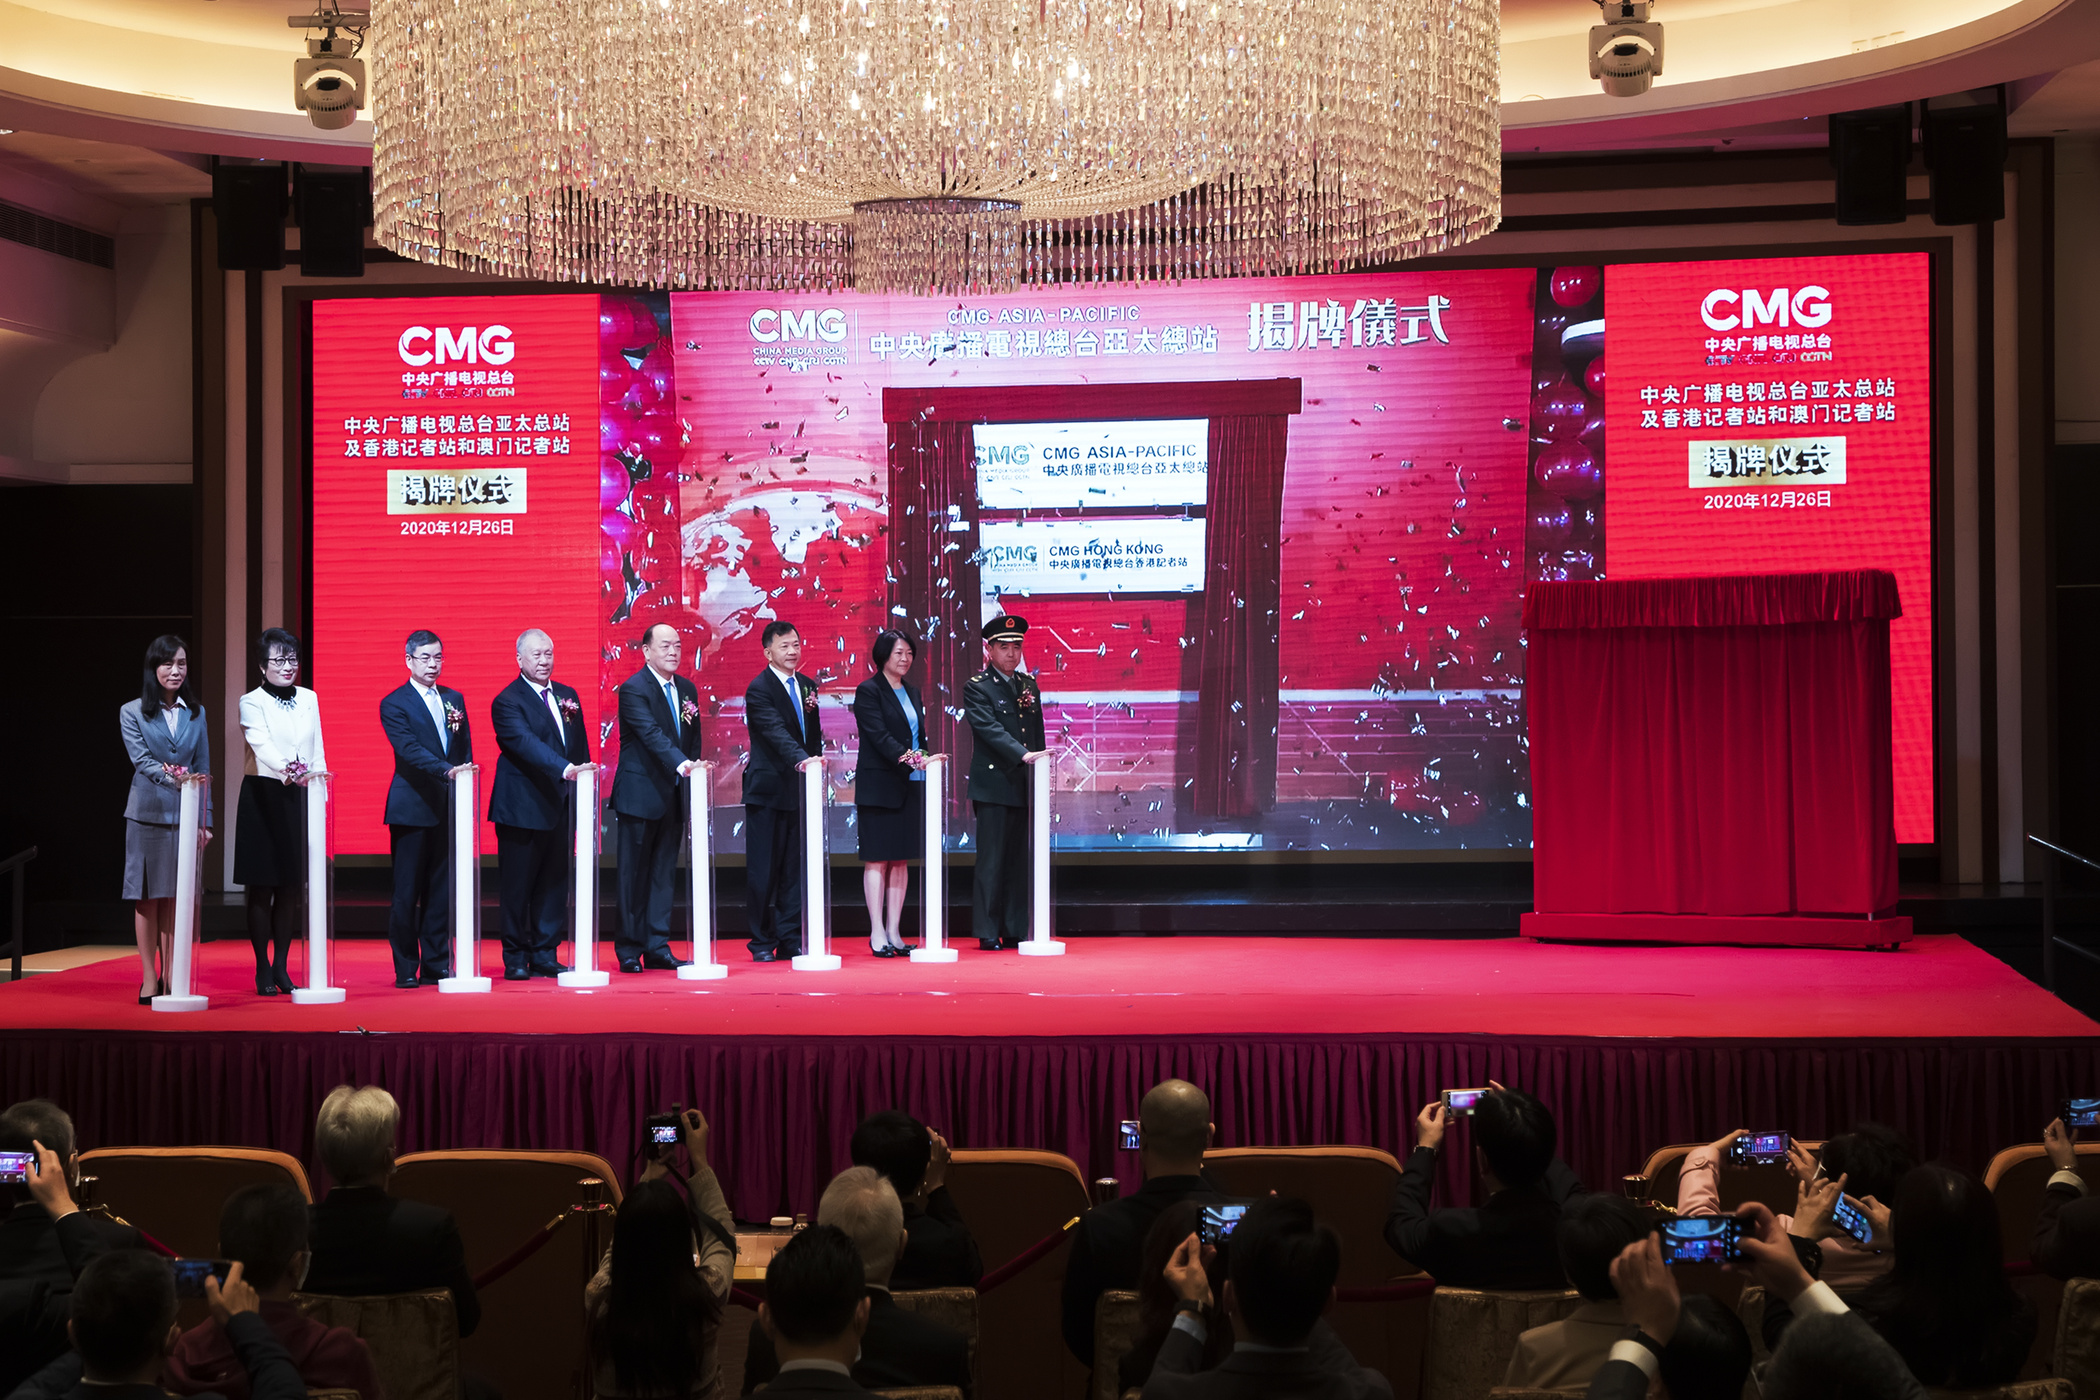 China Media Group Macao branch